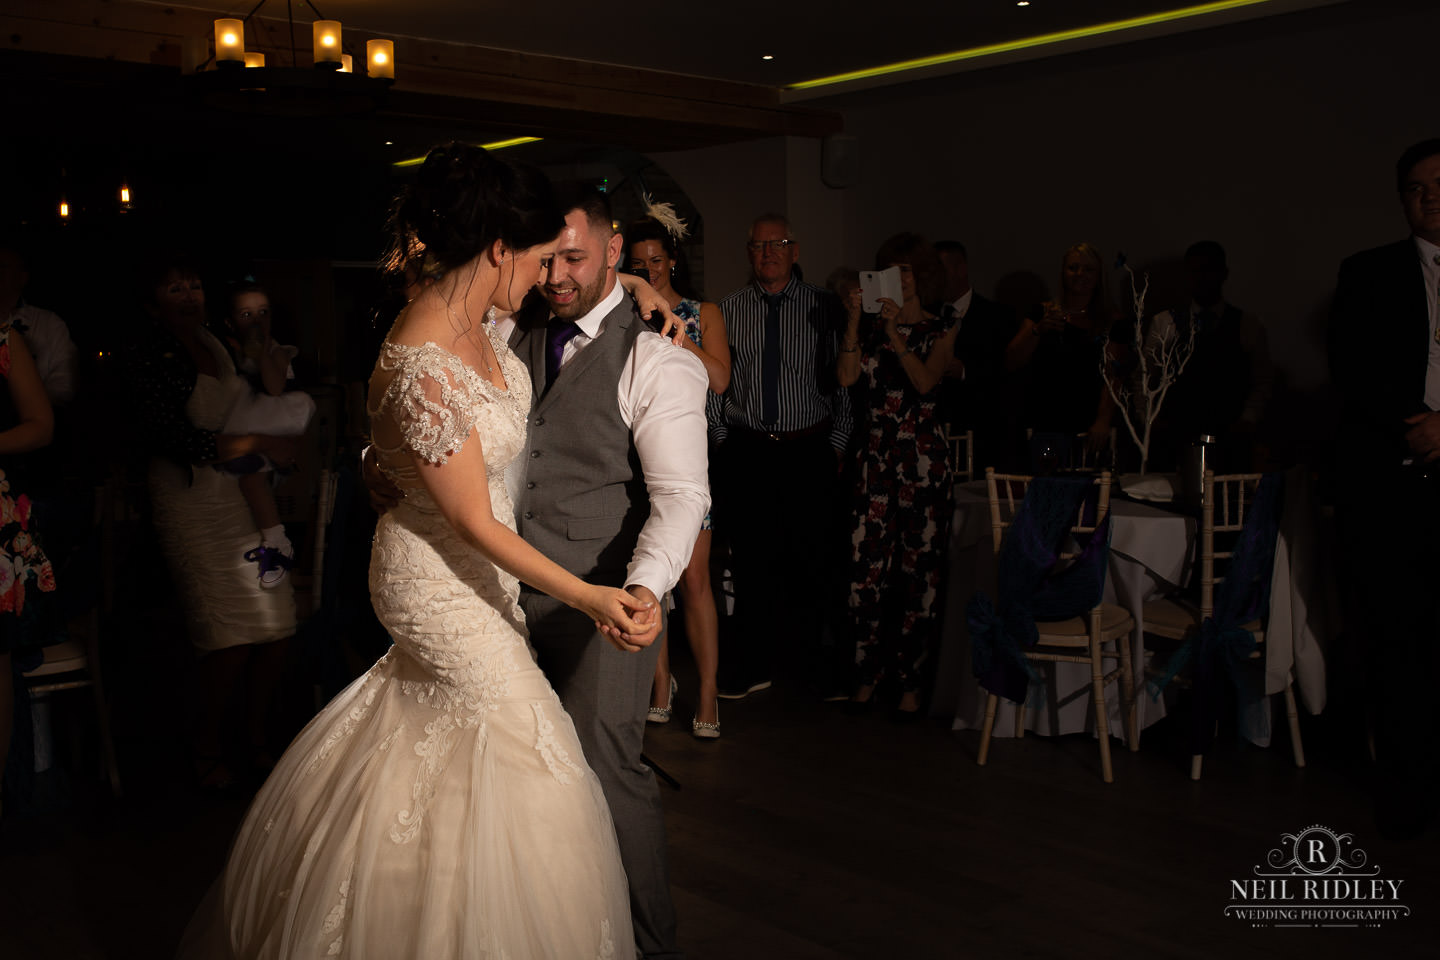 Bride and Groom have their first dance on the dance floor at The Mill at Conder Green